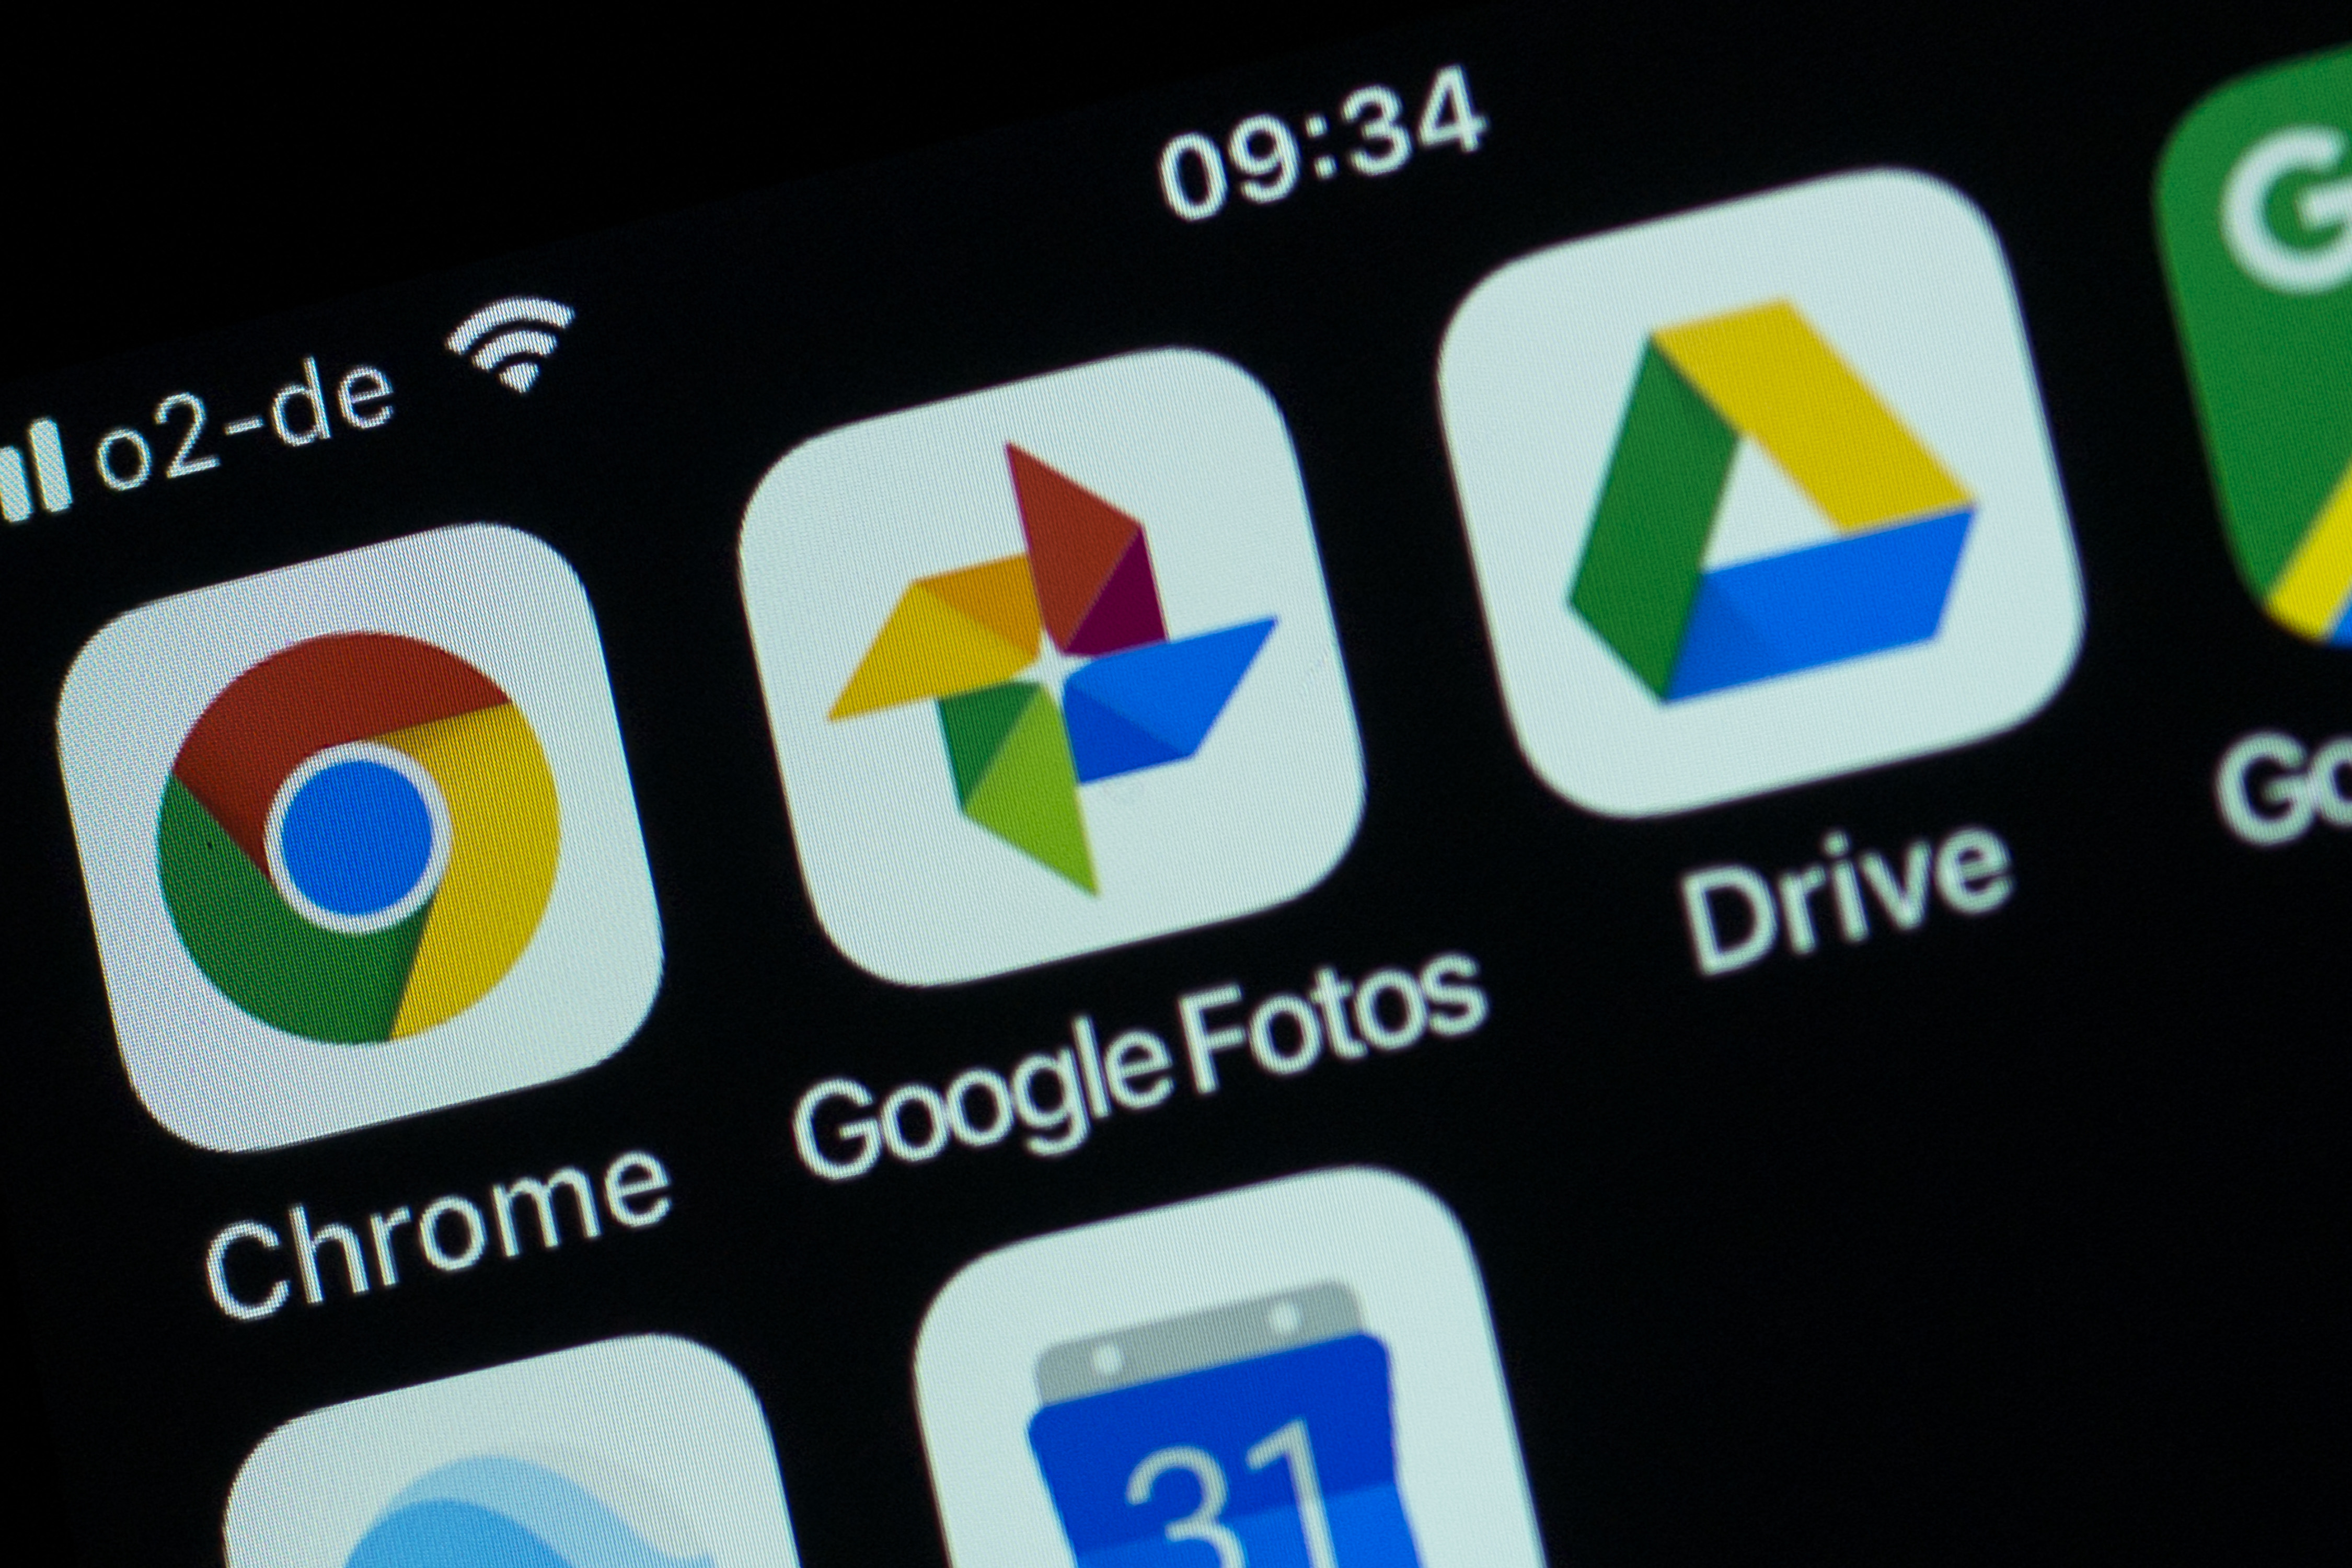 BERLIN, GERMANY - MARCH 03: In this photo illustration several apps of Google are displayed on a smartphone on March 3, 2018 in Berlin, Germany. The left-wing organizers of the event cited Google's profit-oriented mass collection of personal data about people as well as the gentrification locals fear will accelerate should the Google Campus open. Google is reportedly planning to open a Google Campus, which is meant to create a venue for startups and technological exchange, this summer in a building that once housed an electric relay station in the heart of Kreuzberg. (Photo by Carsten Koall/Getty Images)